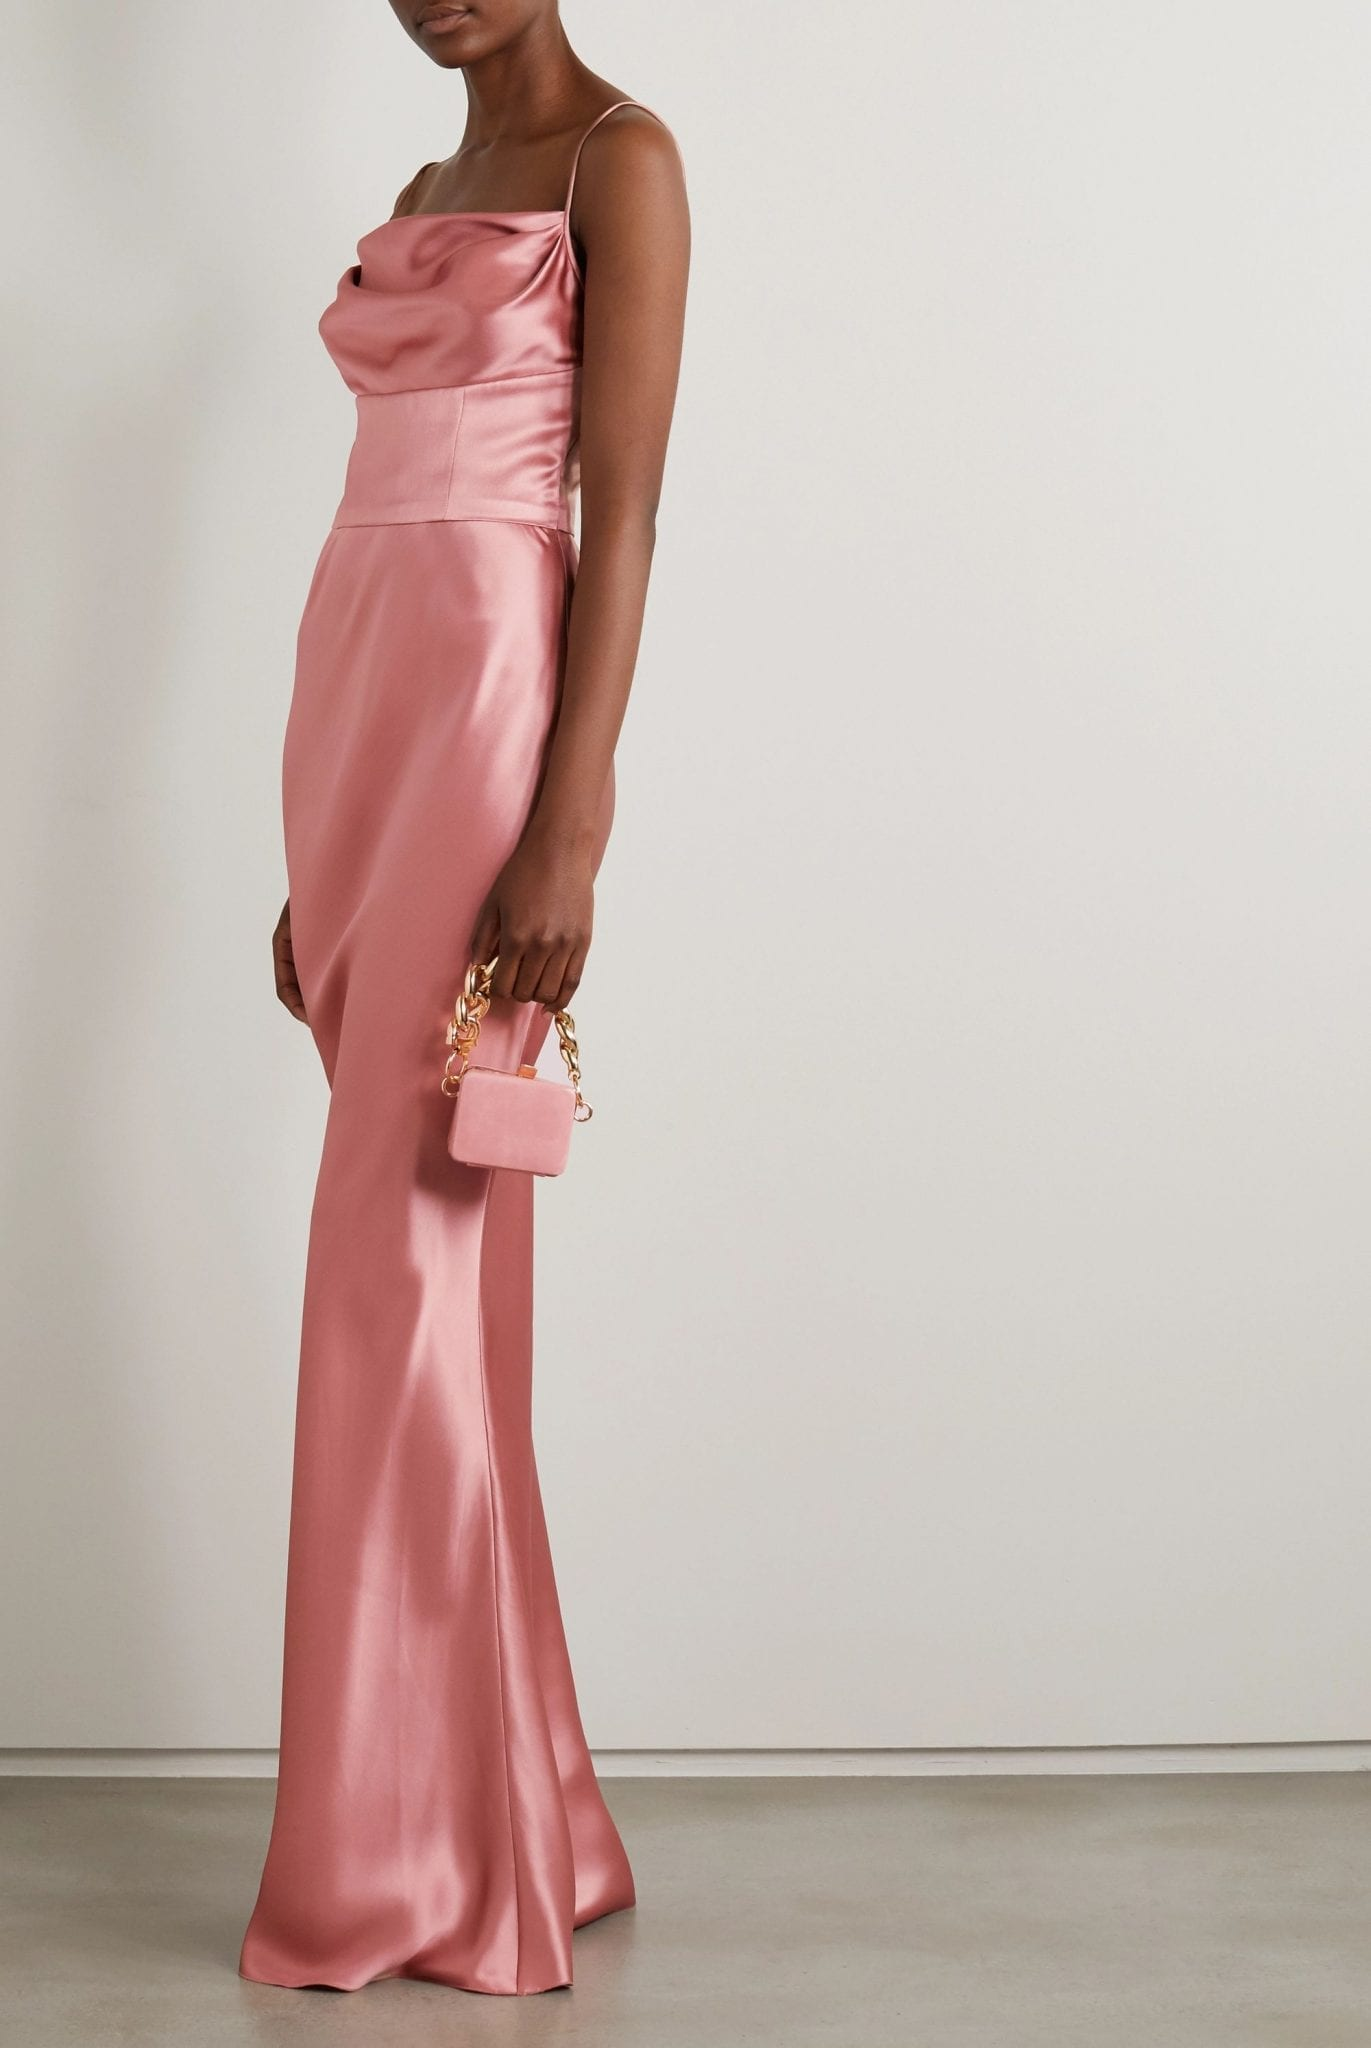 DOLCE & GABBANA Draped Silk-satin Gown